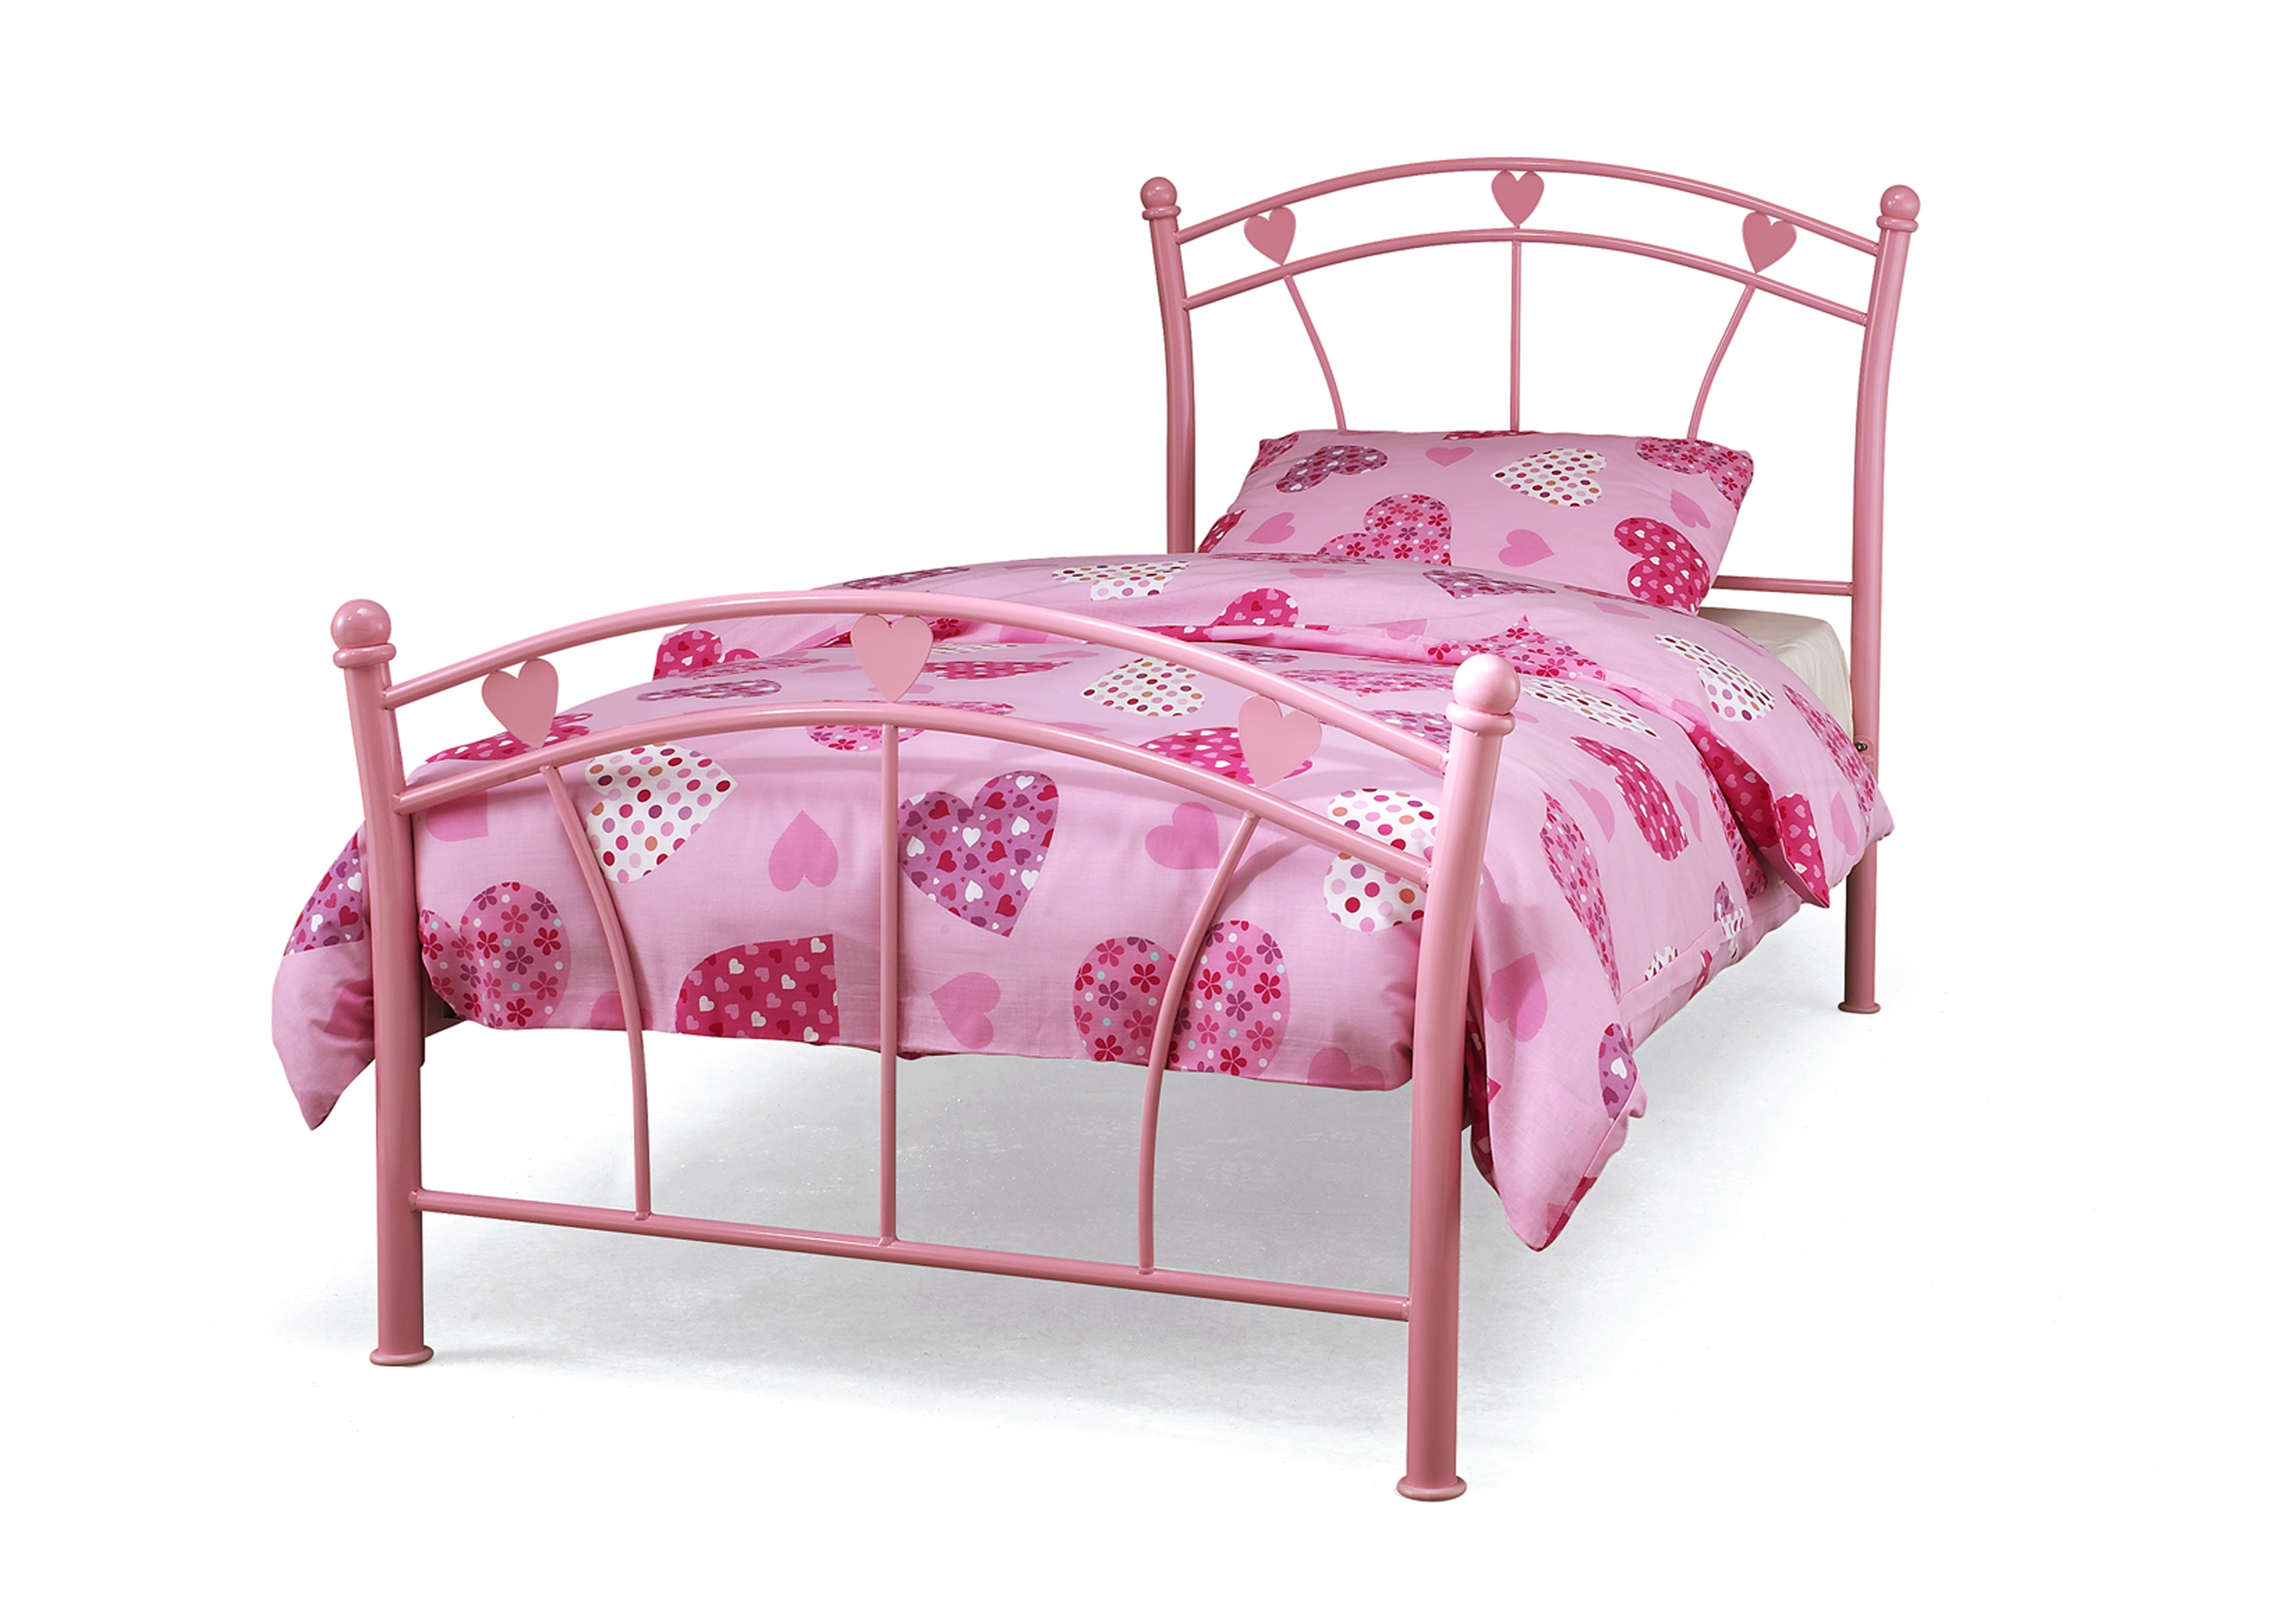 Serene Jemima Pink Metal Bed Frame from £79